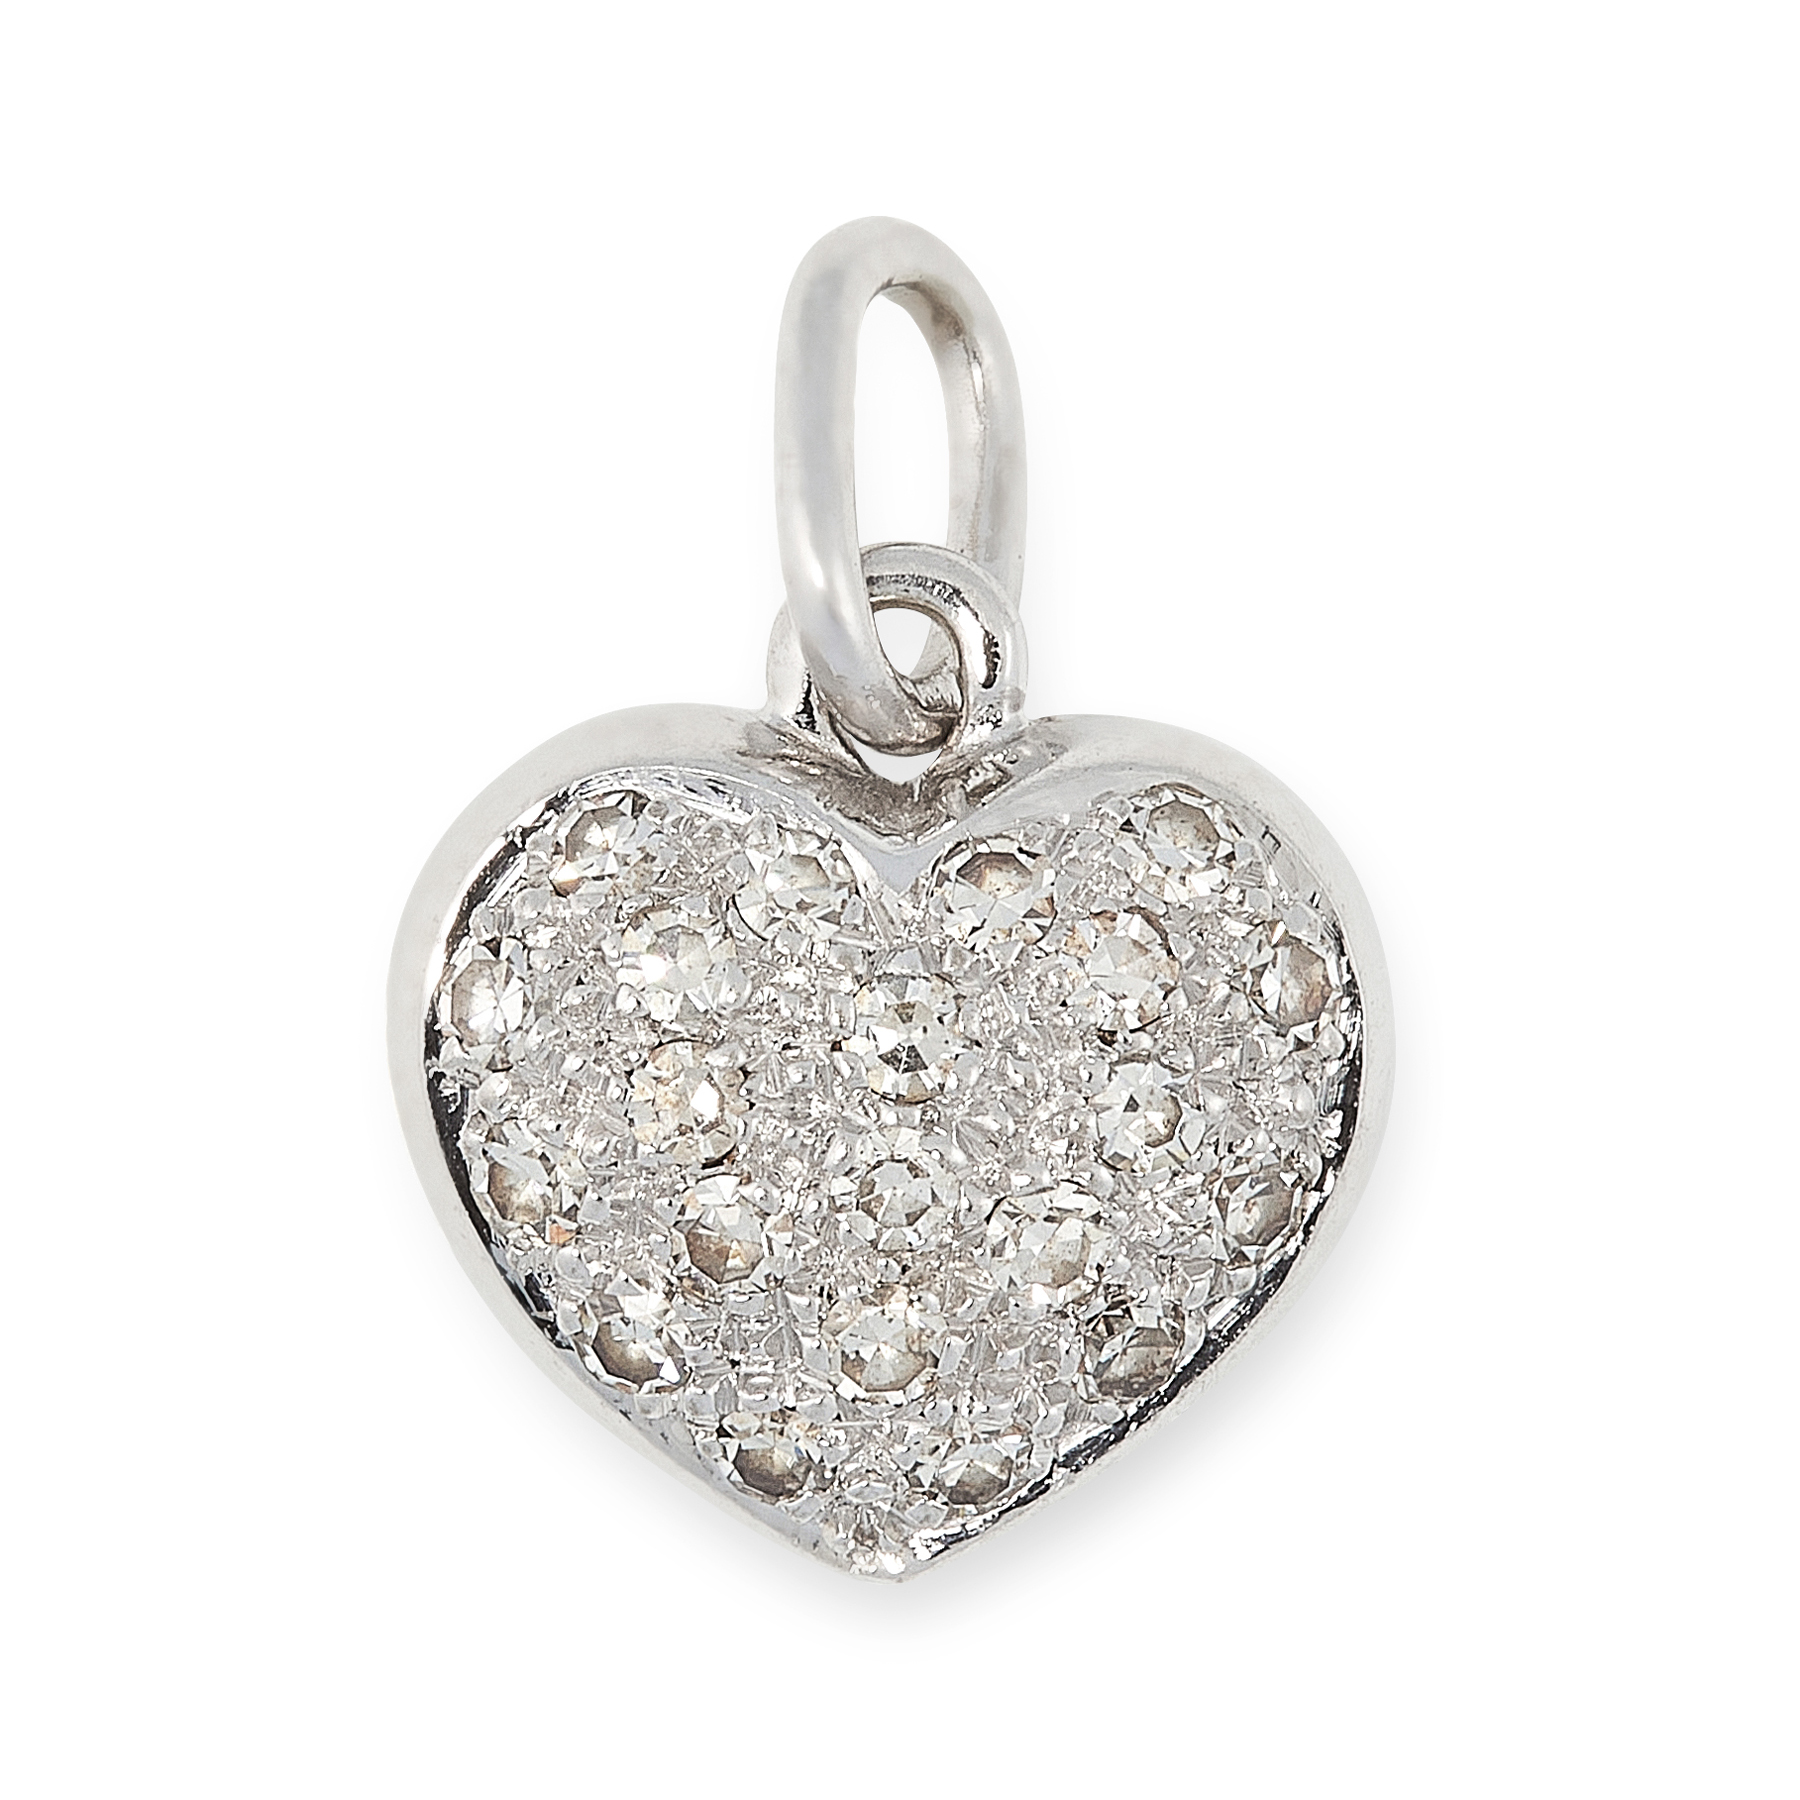 A DIAMOND HEART PENDANT in white gold, designed as a heart, set to one side with a cluster of single